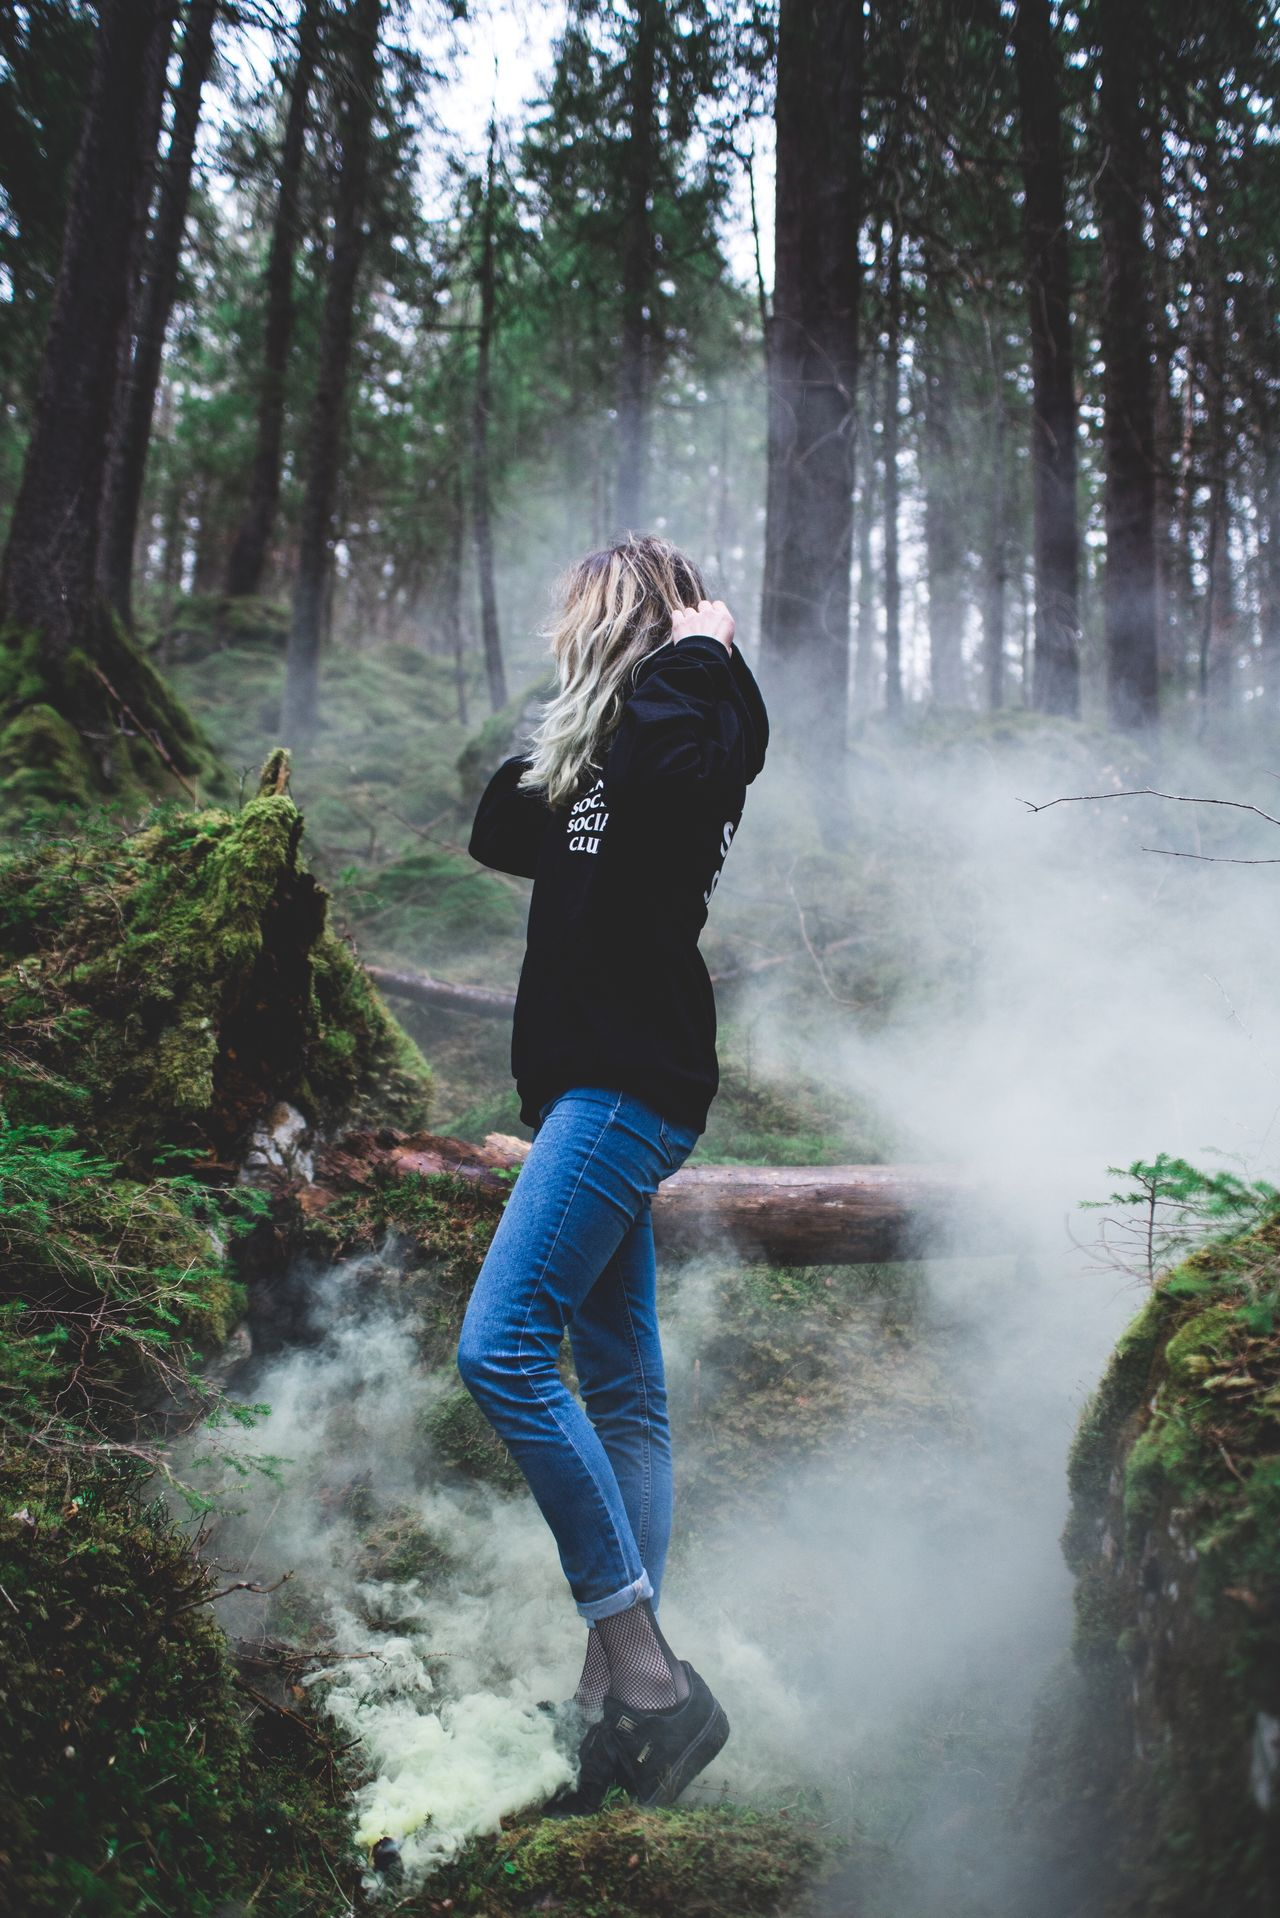 Clouds Forest Full Length One Person Smoke - Physical Structure Nature Hiking Tree Rear View Day People Outdoors Real People Stream - Flowing Water